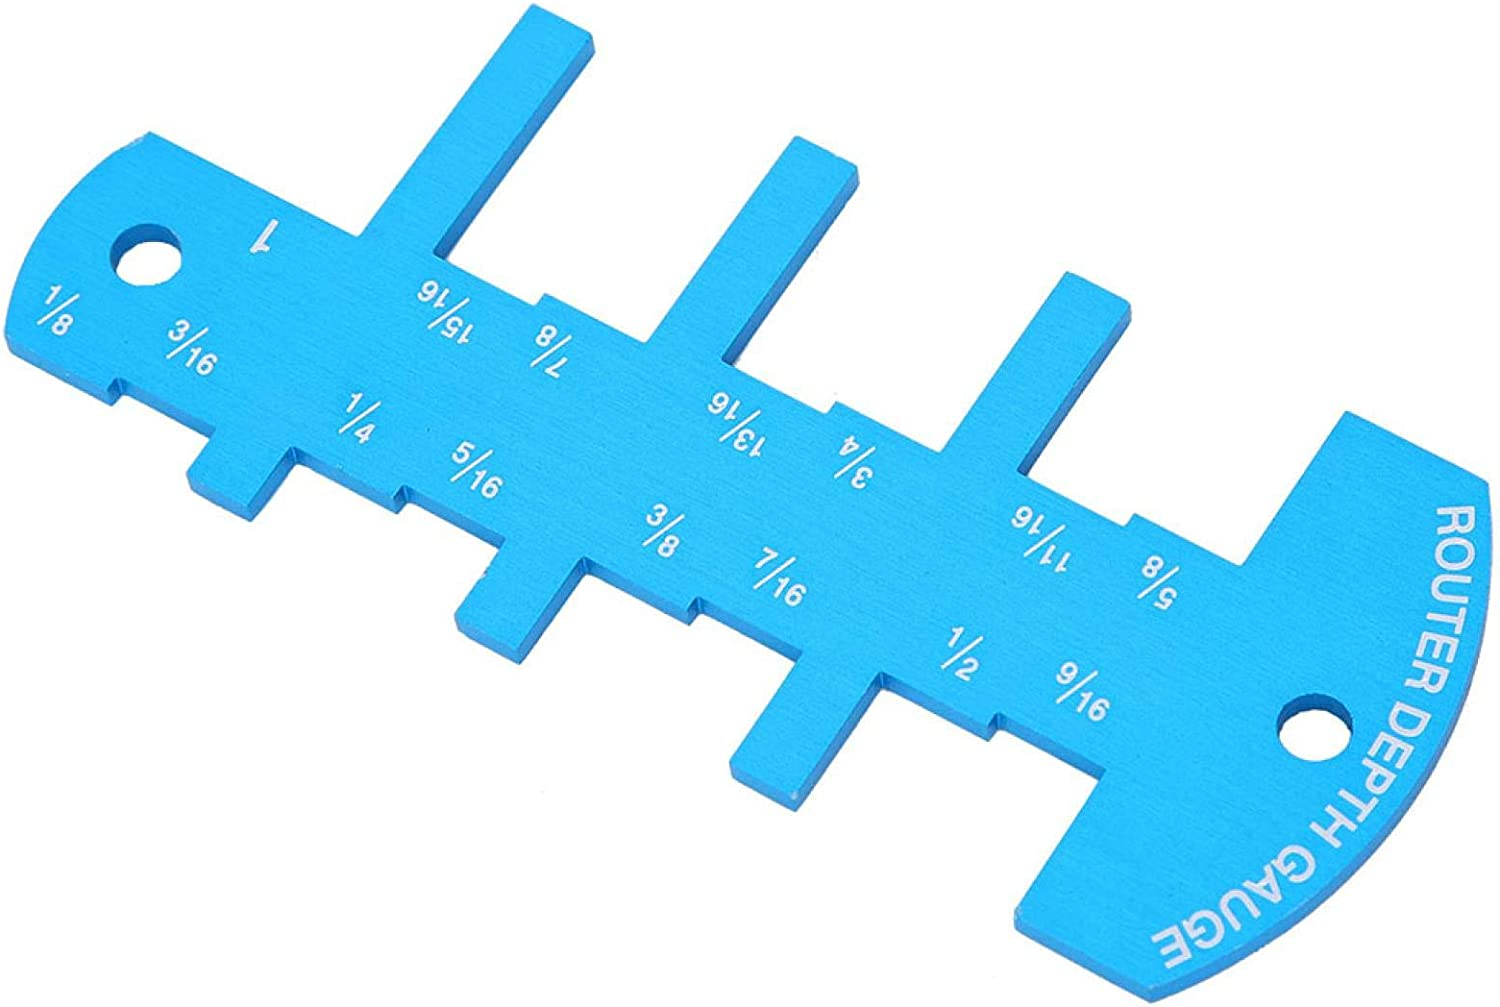 Woodworking Gadget Depth Convenient Table Max 60% Philadelphia Mall OFF Saw Ruler Measuring